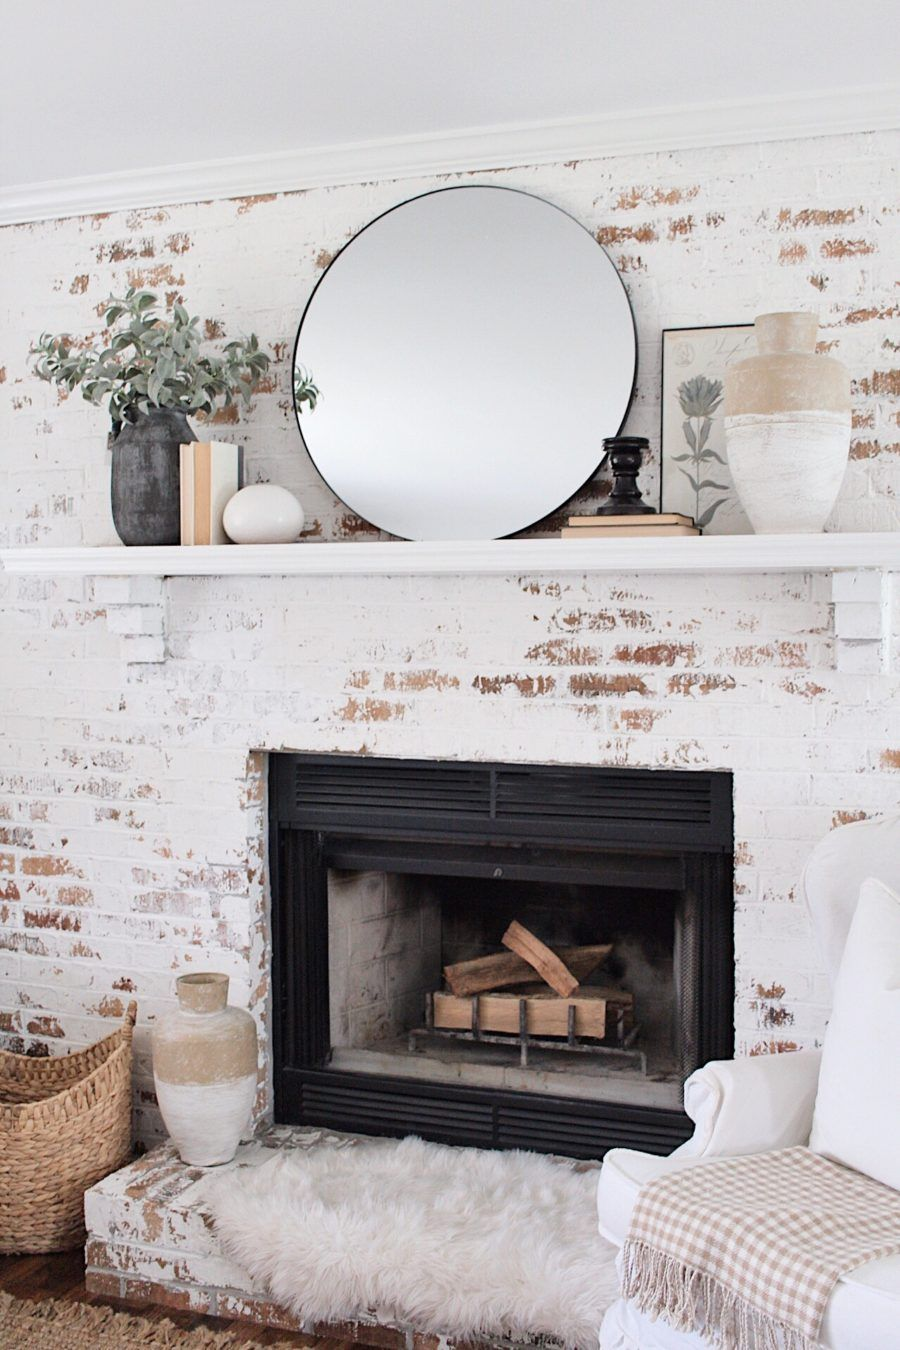 White Brick Fireplace Mantle Decor Ideas With Round Black Mirror Musings By Madison Style In 2020 Fireplace Mantle Decor Brick Living Room Brick Fireplace Mantles